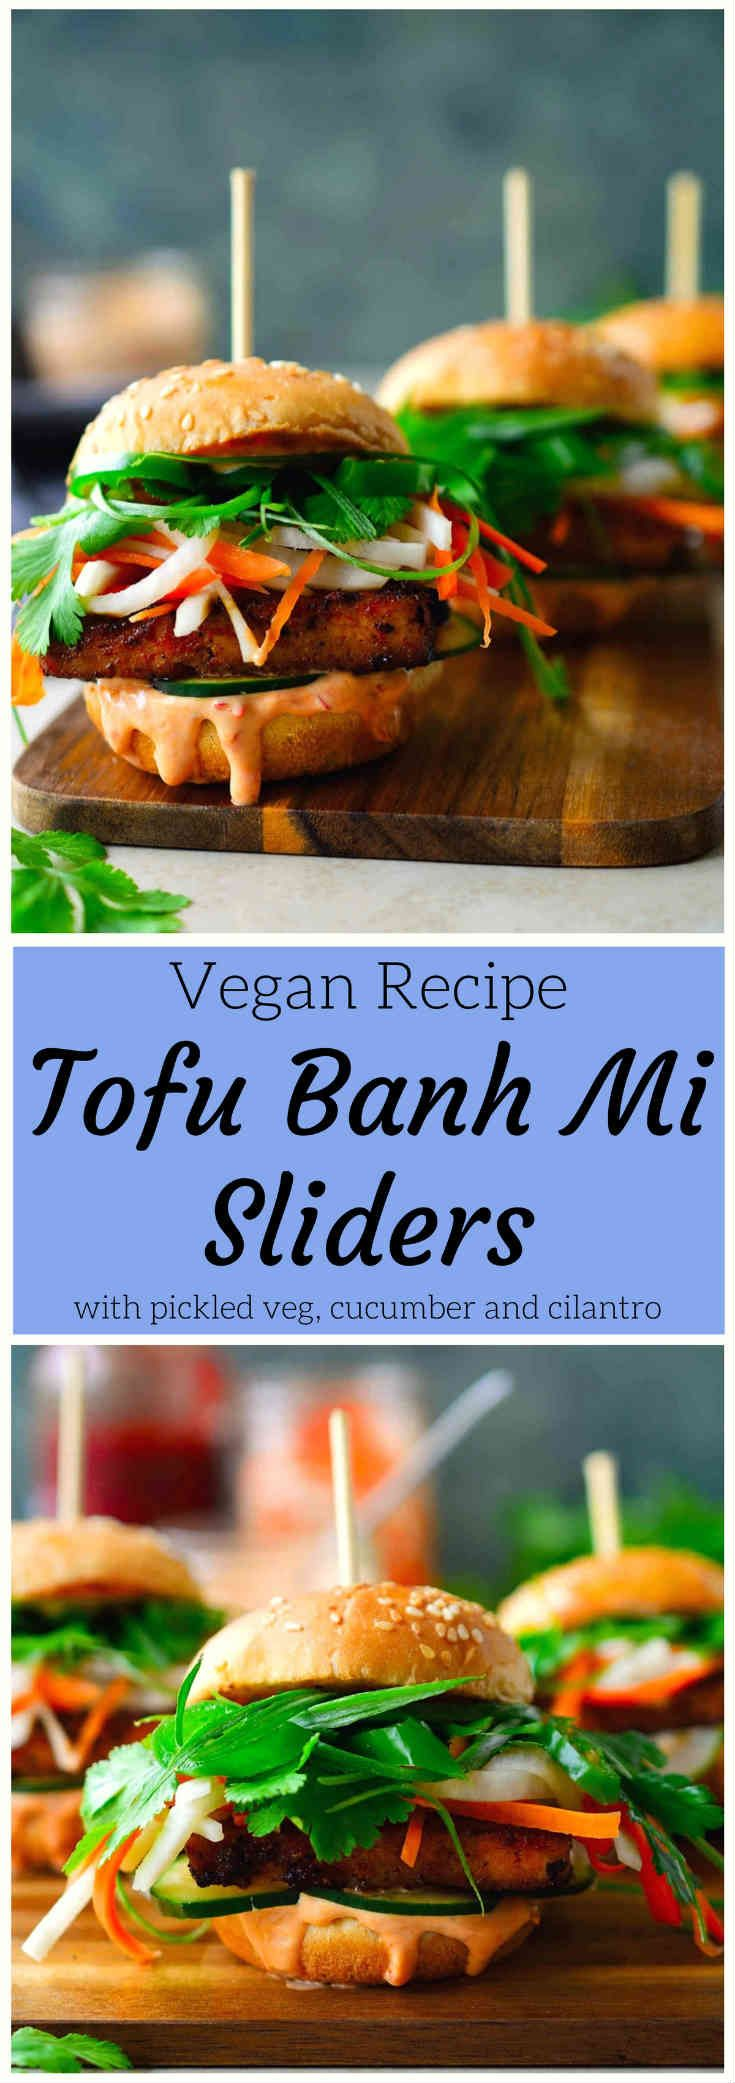 At just $0.85 each, these tofu banh mi vegan sliders are packed with flavour and a fun twist on the classic banh mi sandwich. They're great as vegan finger food or appetizers for a party, or as a delicious dinner served with fries or a salad. via @cilantroandcitr